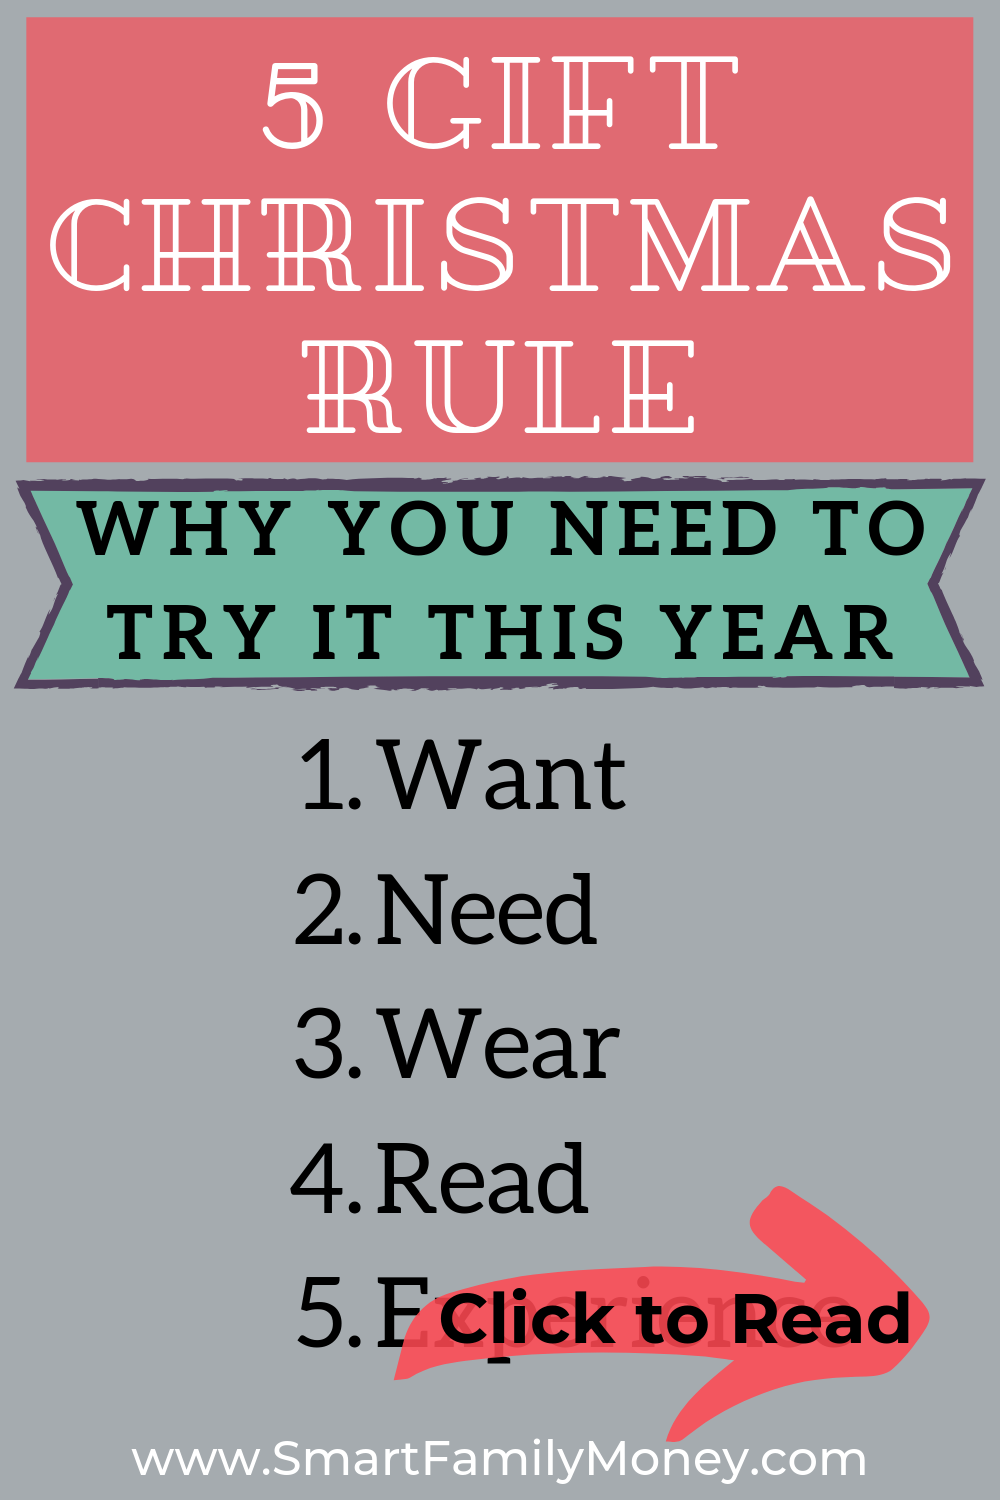 5 Gift Rule for Christmas Why You Need To Try It (With